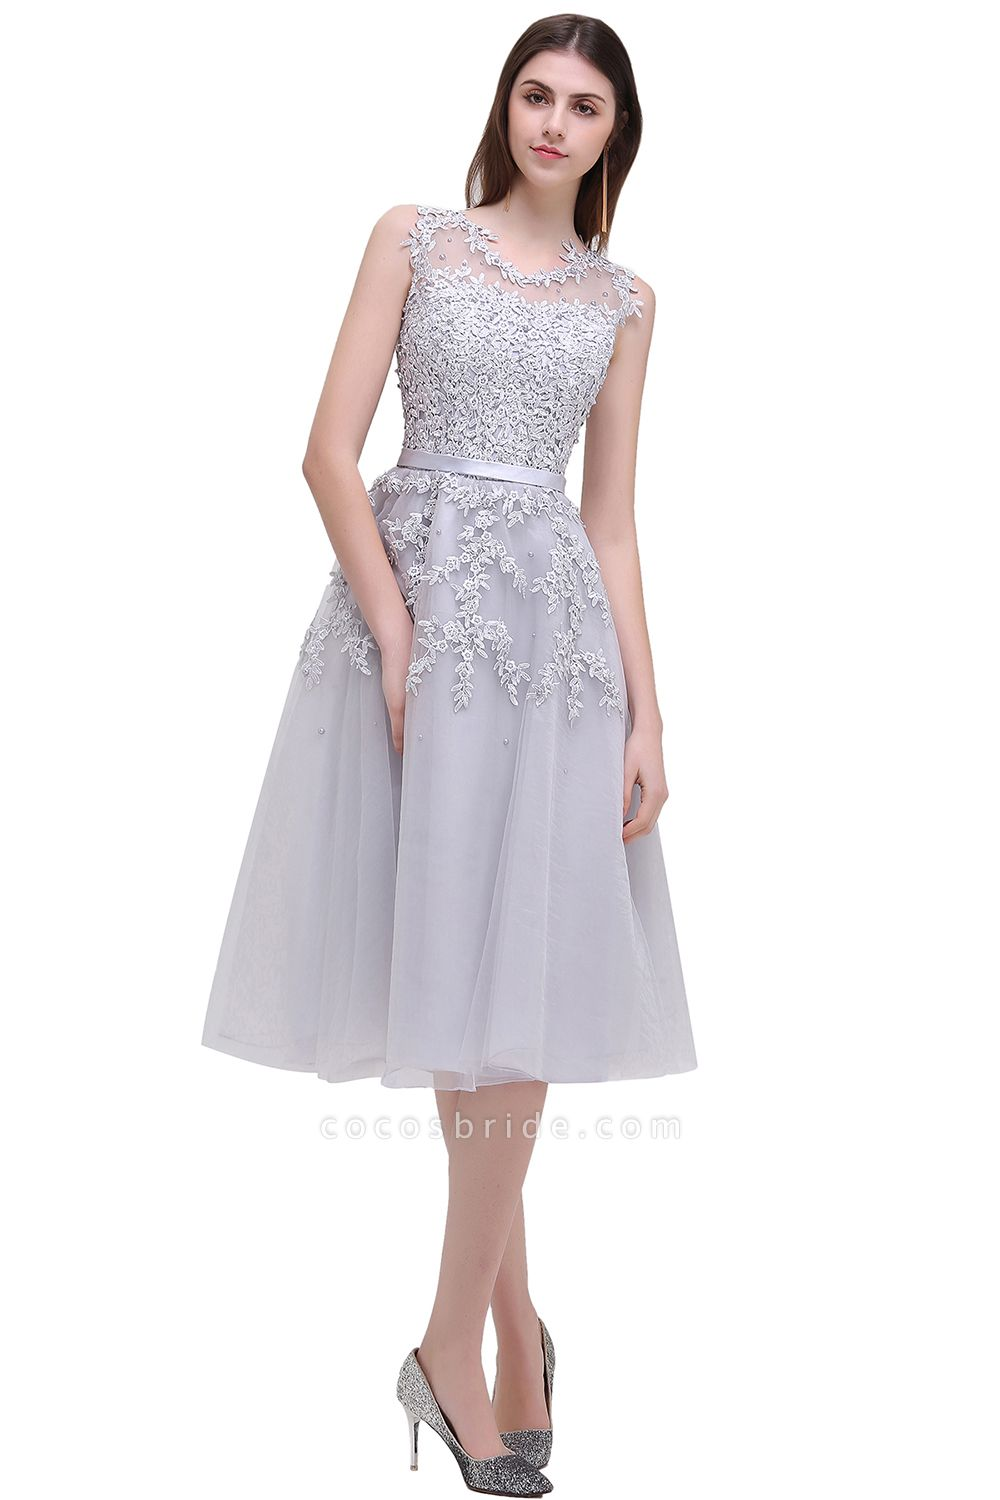 EMORY | A-Line Crew Tea Length Lace Appliques Short Prom Dresses